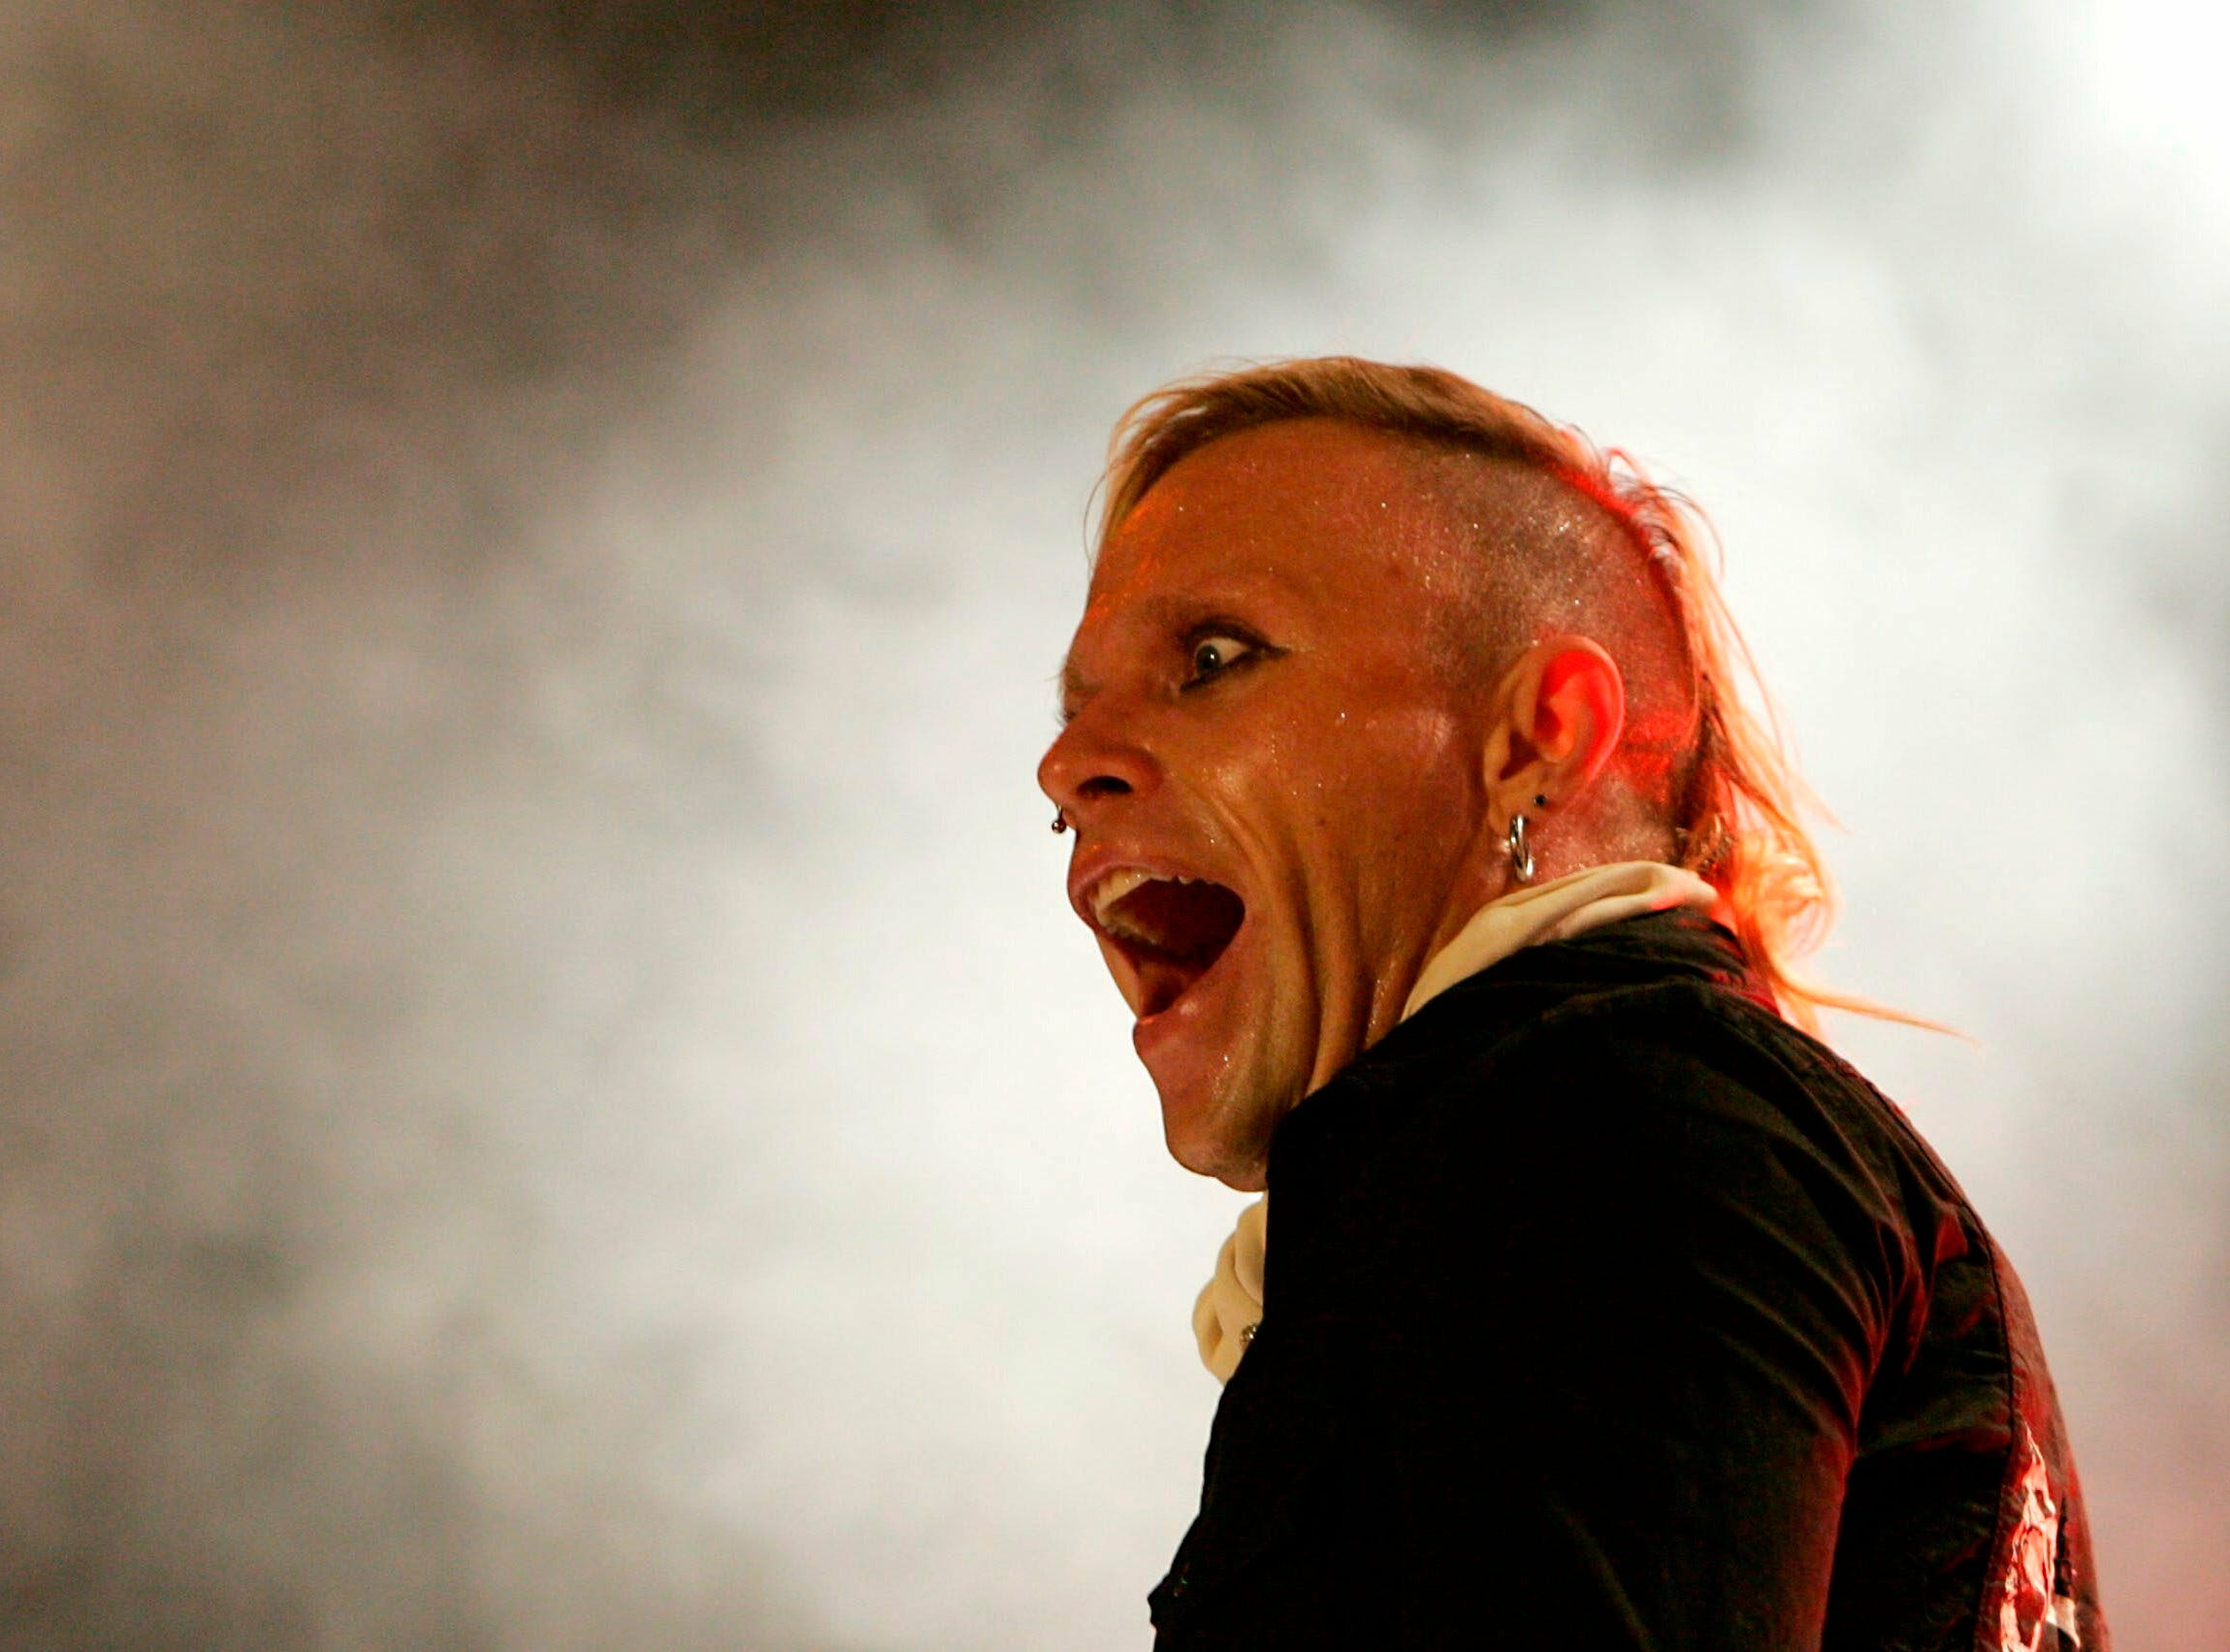 In this file photo dated Friday, July 15, 2005, Keith Flint, singer of the British band Prodigy, performs on stage, at the Gurten open air Festival in Bern, Switzerland. The Progidy front man Flint is reported to have died at his home in London, according to a statement by the band Monday March 4, 2019.